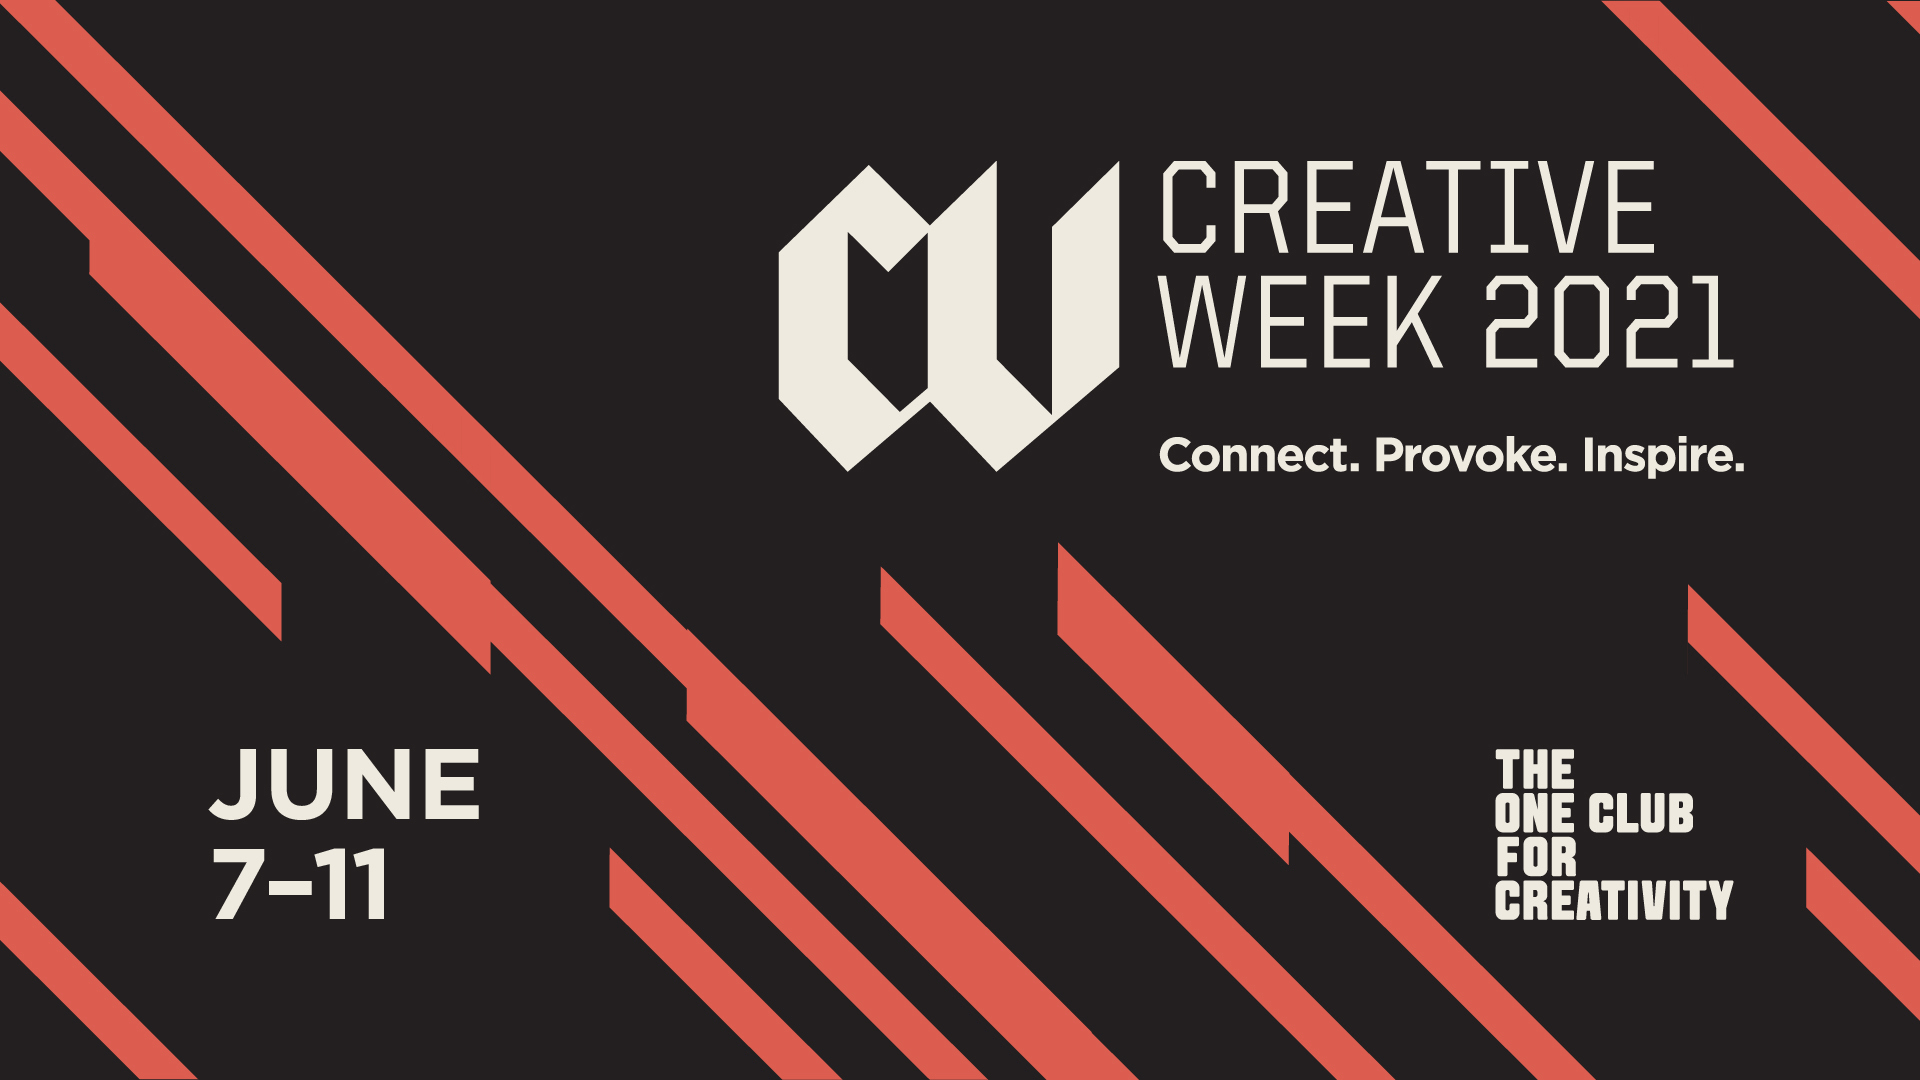 The Creative Week 2021 logo appears alongside The One Club logo and the event dates June 7 through 11